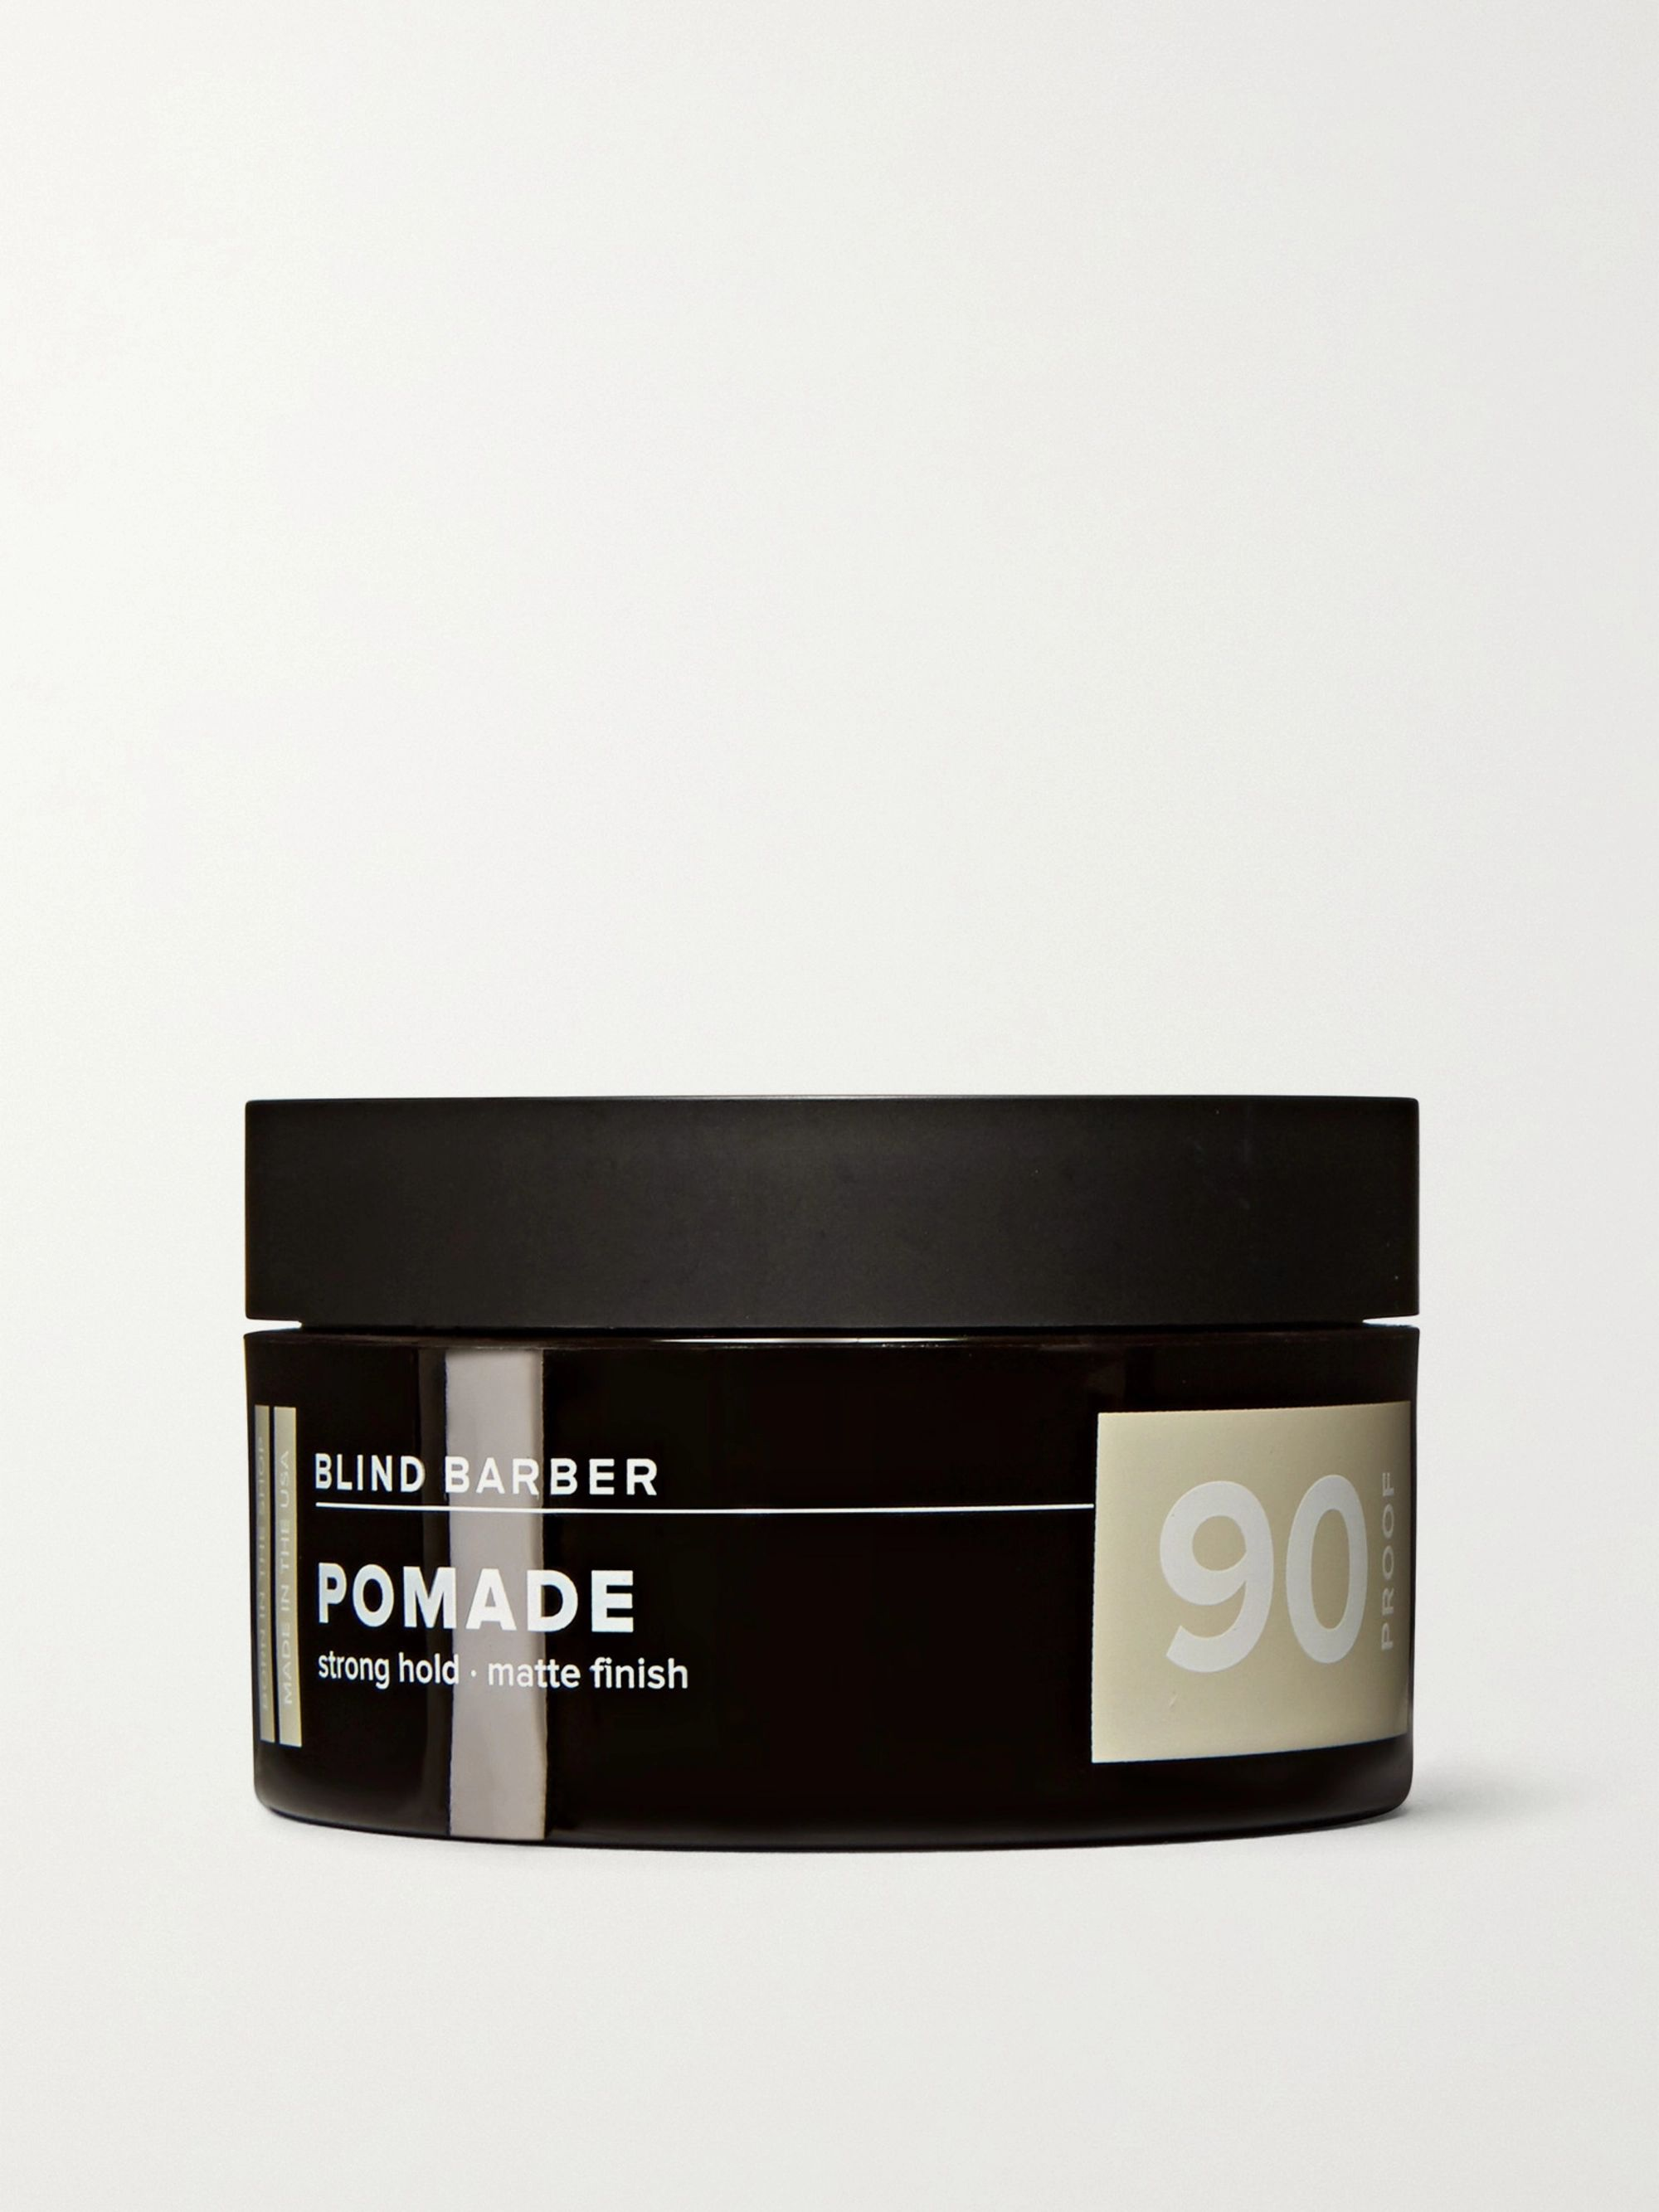 Blind Barber 90 Proof Pomade, 70g